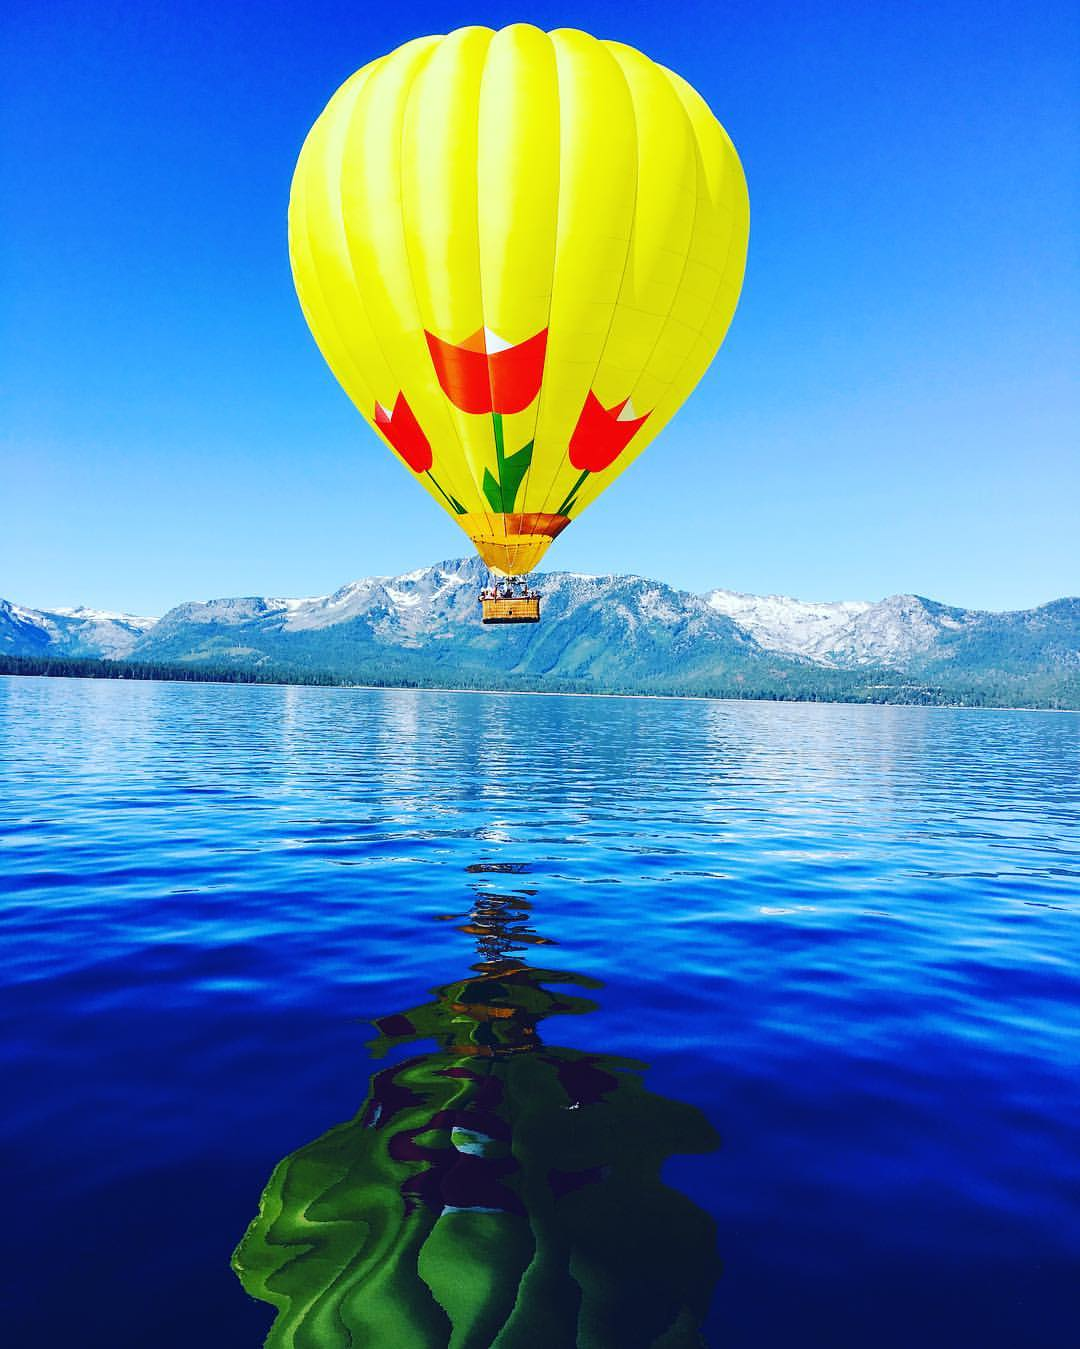 tahoeballoon